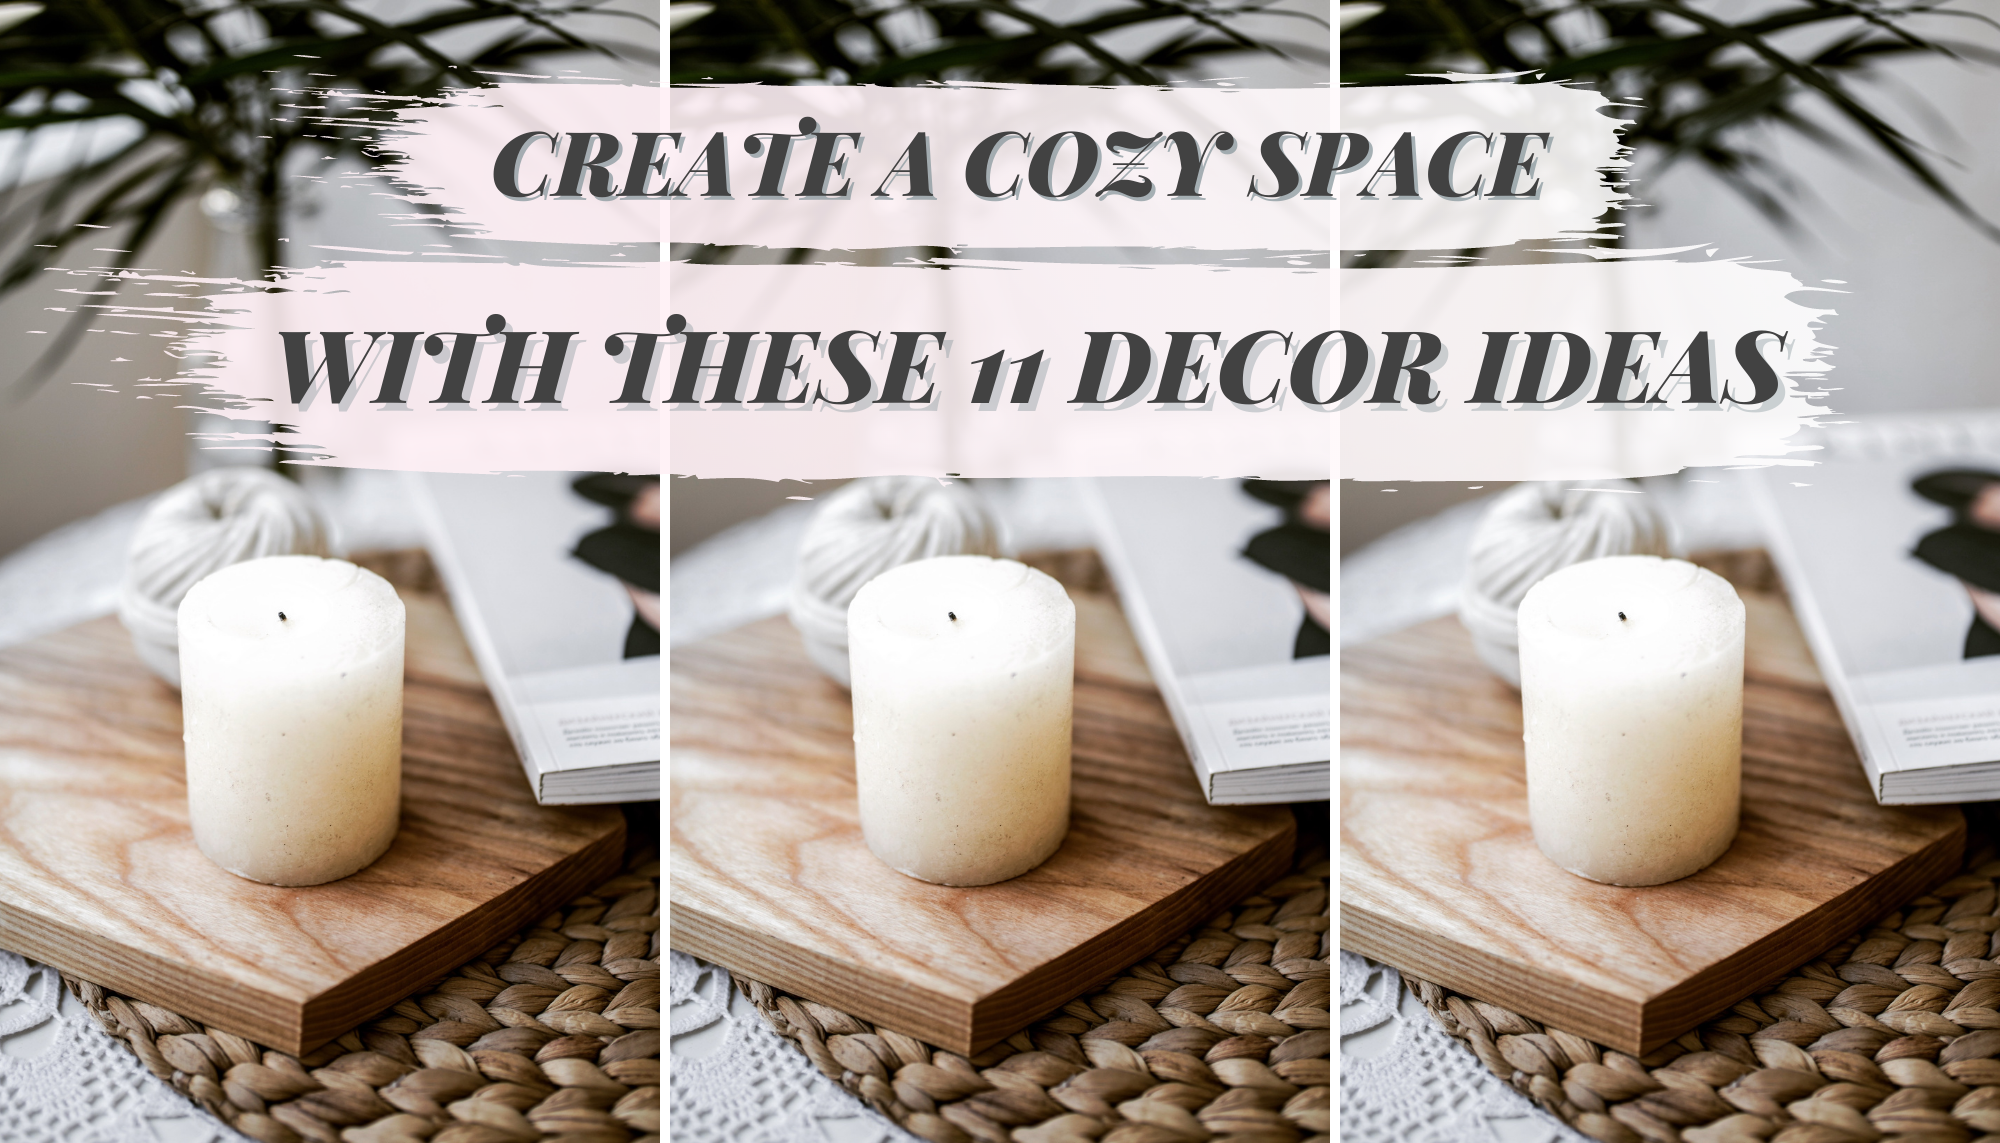 Header Image: Create a cozy space with these 11 decor ideas.\